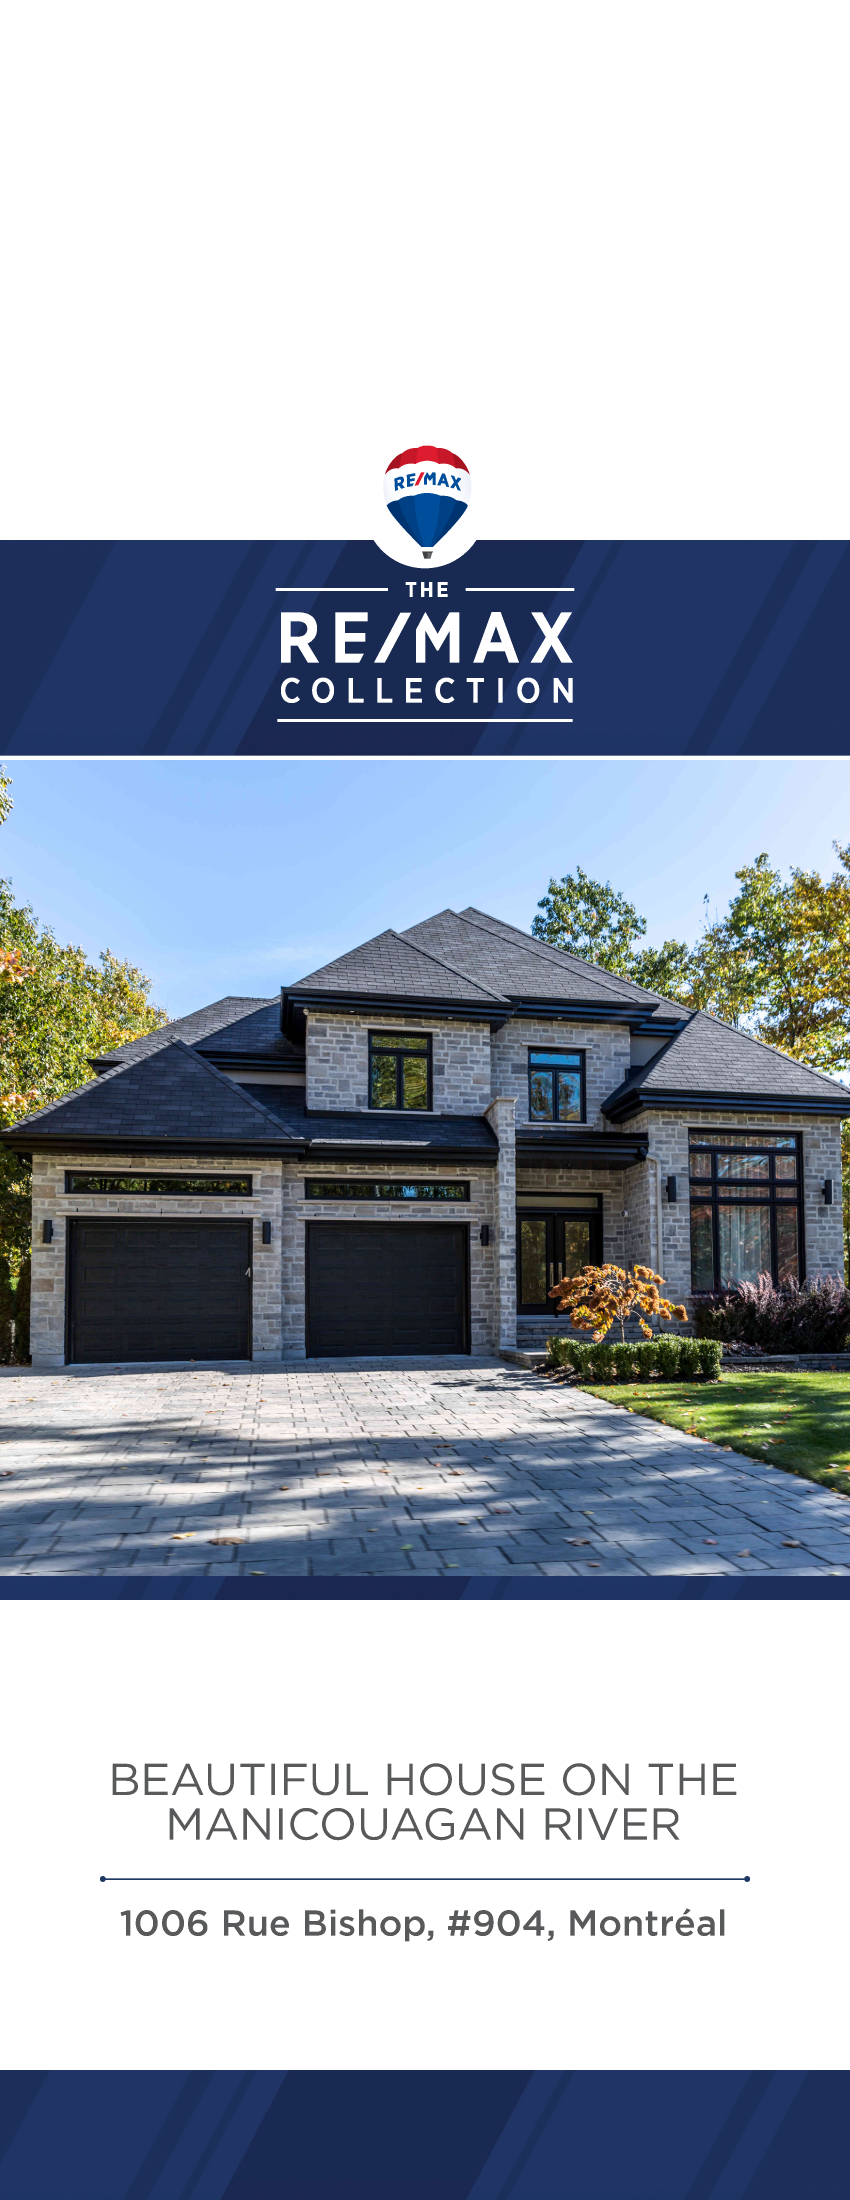 1 | Remax The Collection 1